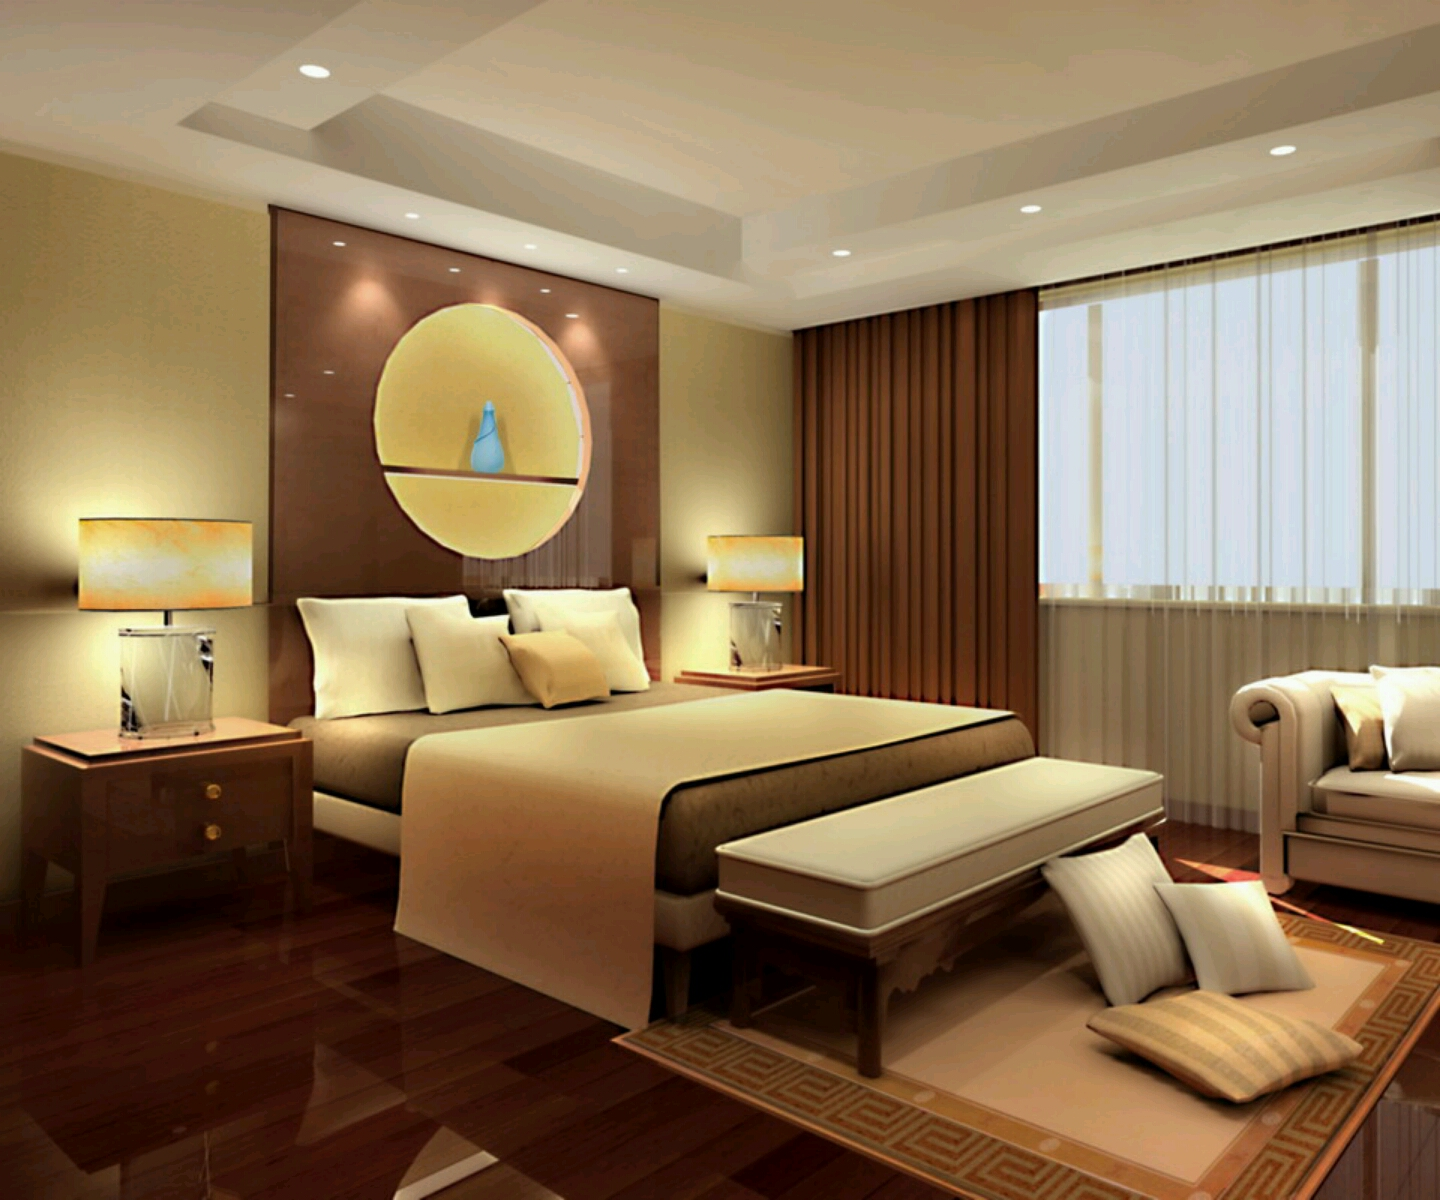 New home designs latest modern beautiful bedrooms for Interior designs for bedroom